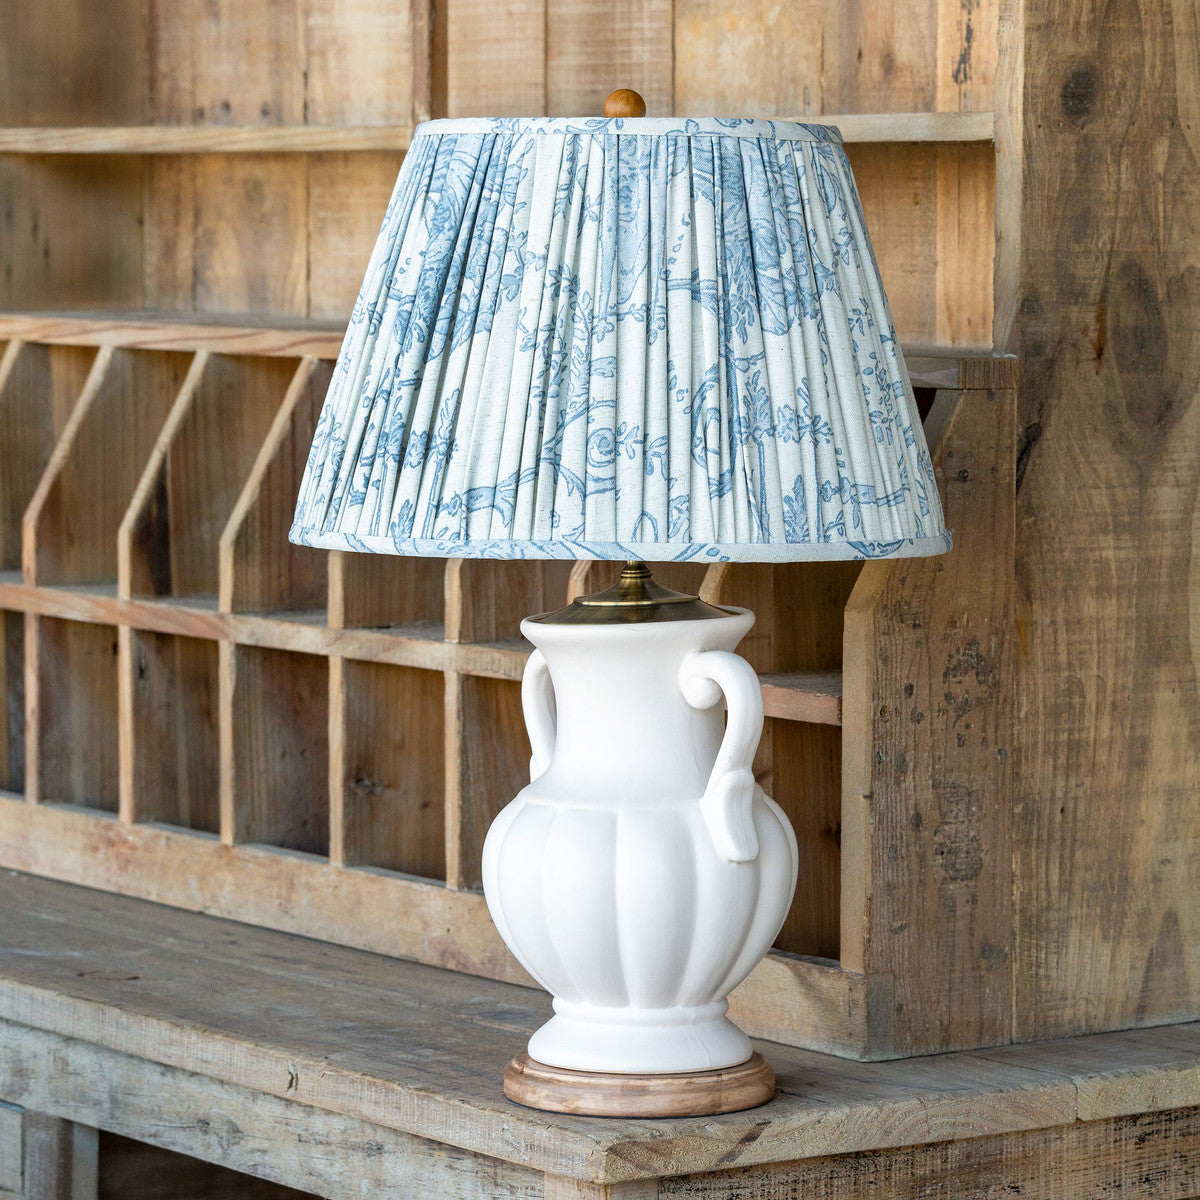 Lovecup Ceramic Table Lamp With French Blue Shade L129